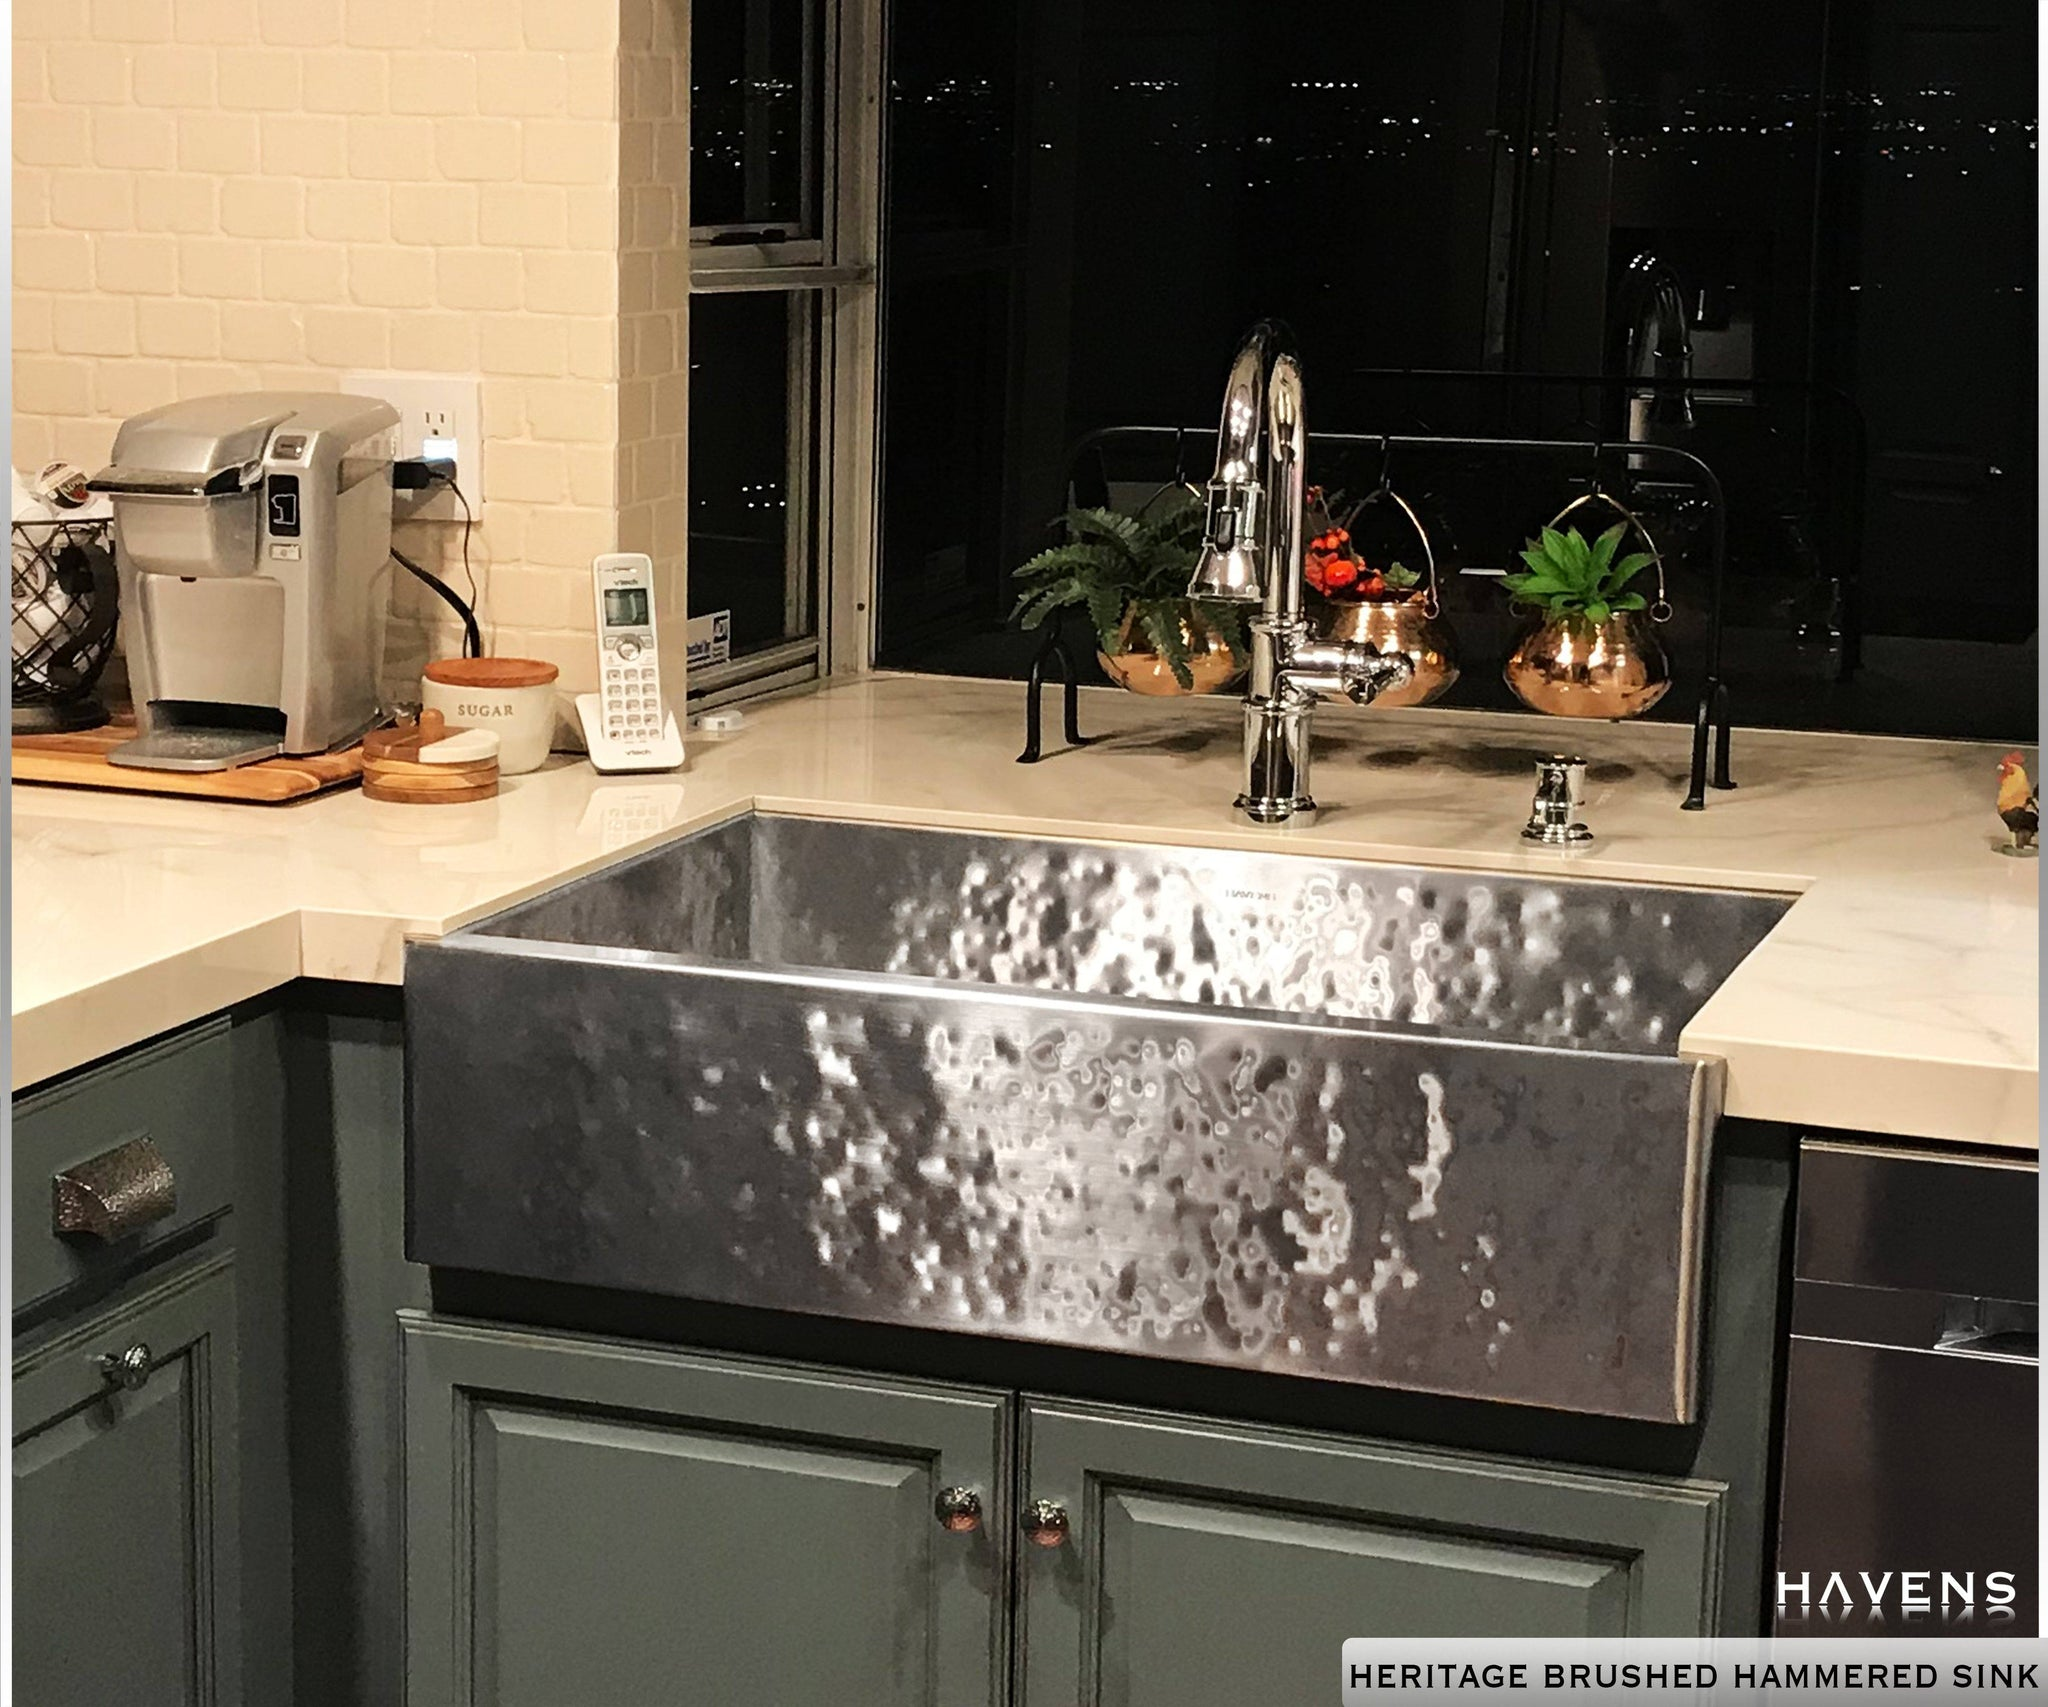 Heritage - Heritage Farmhouse Sink - Brushed Hammered Stainless